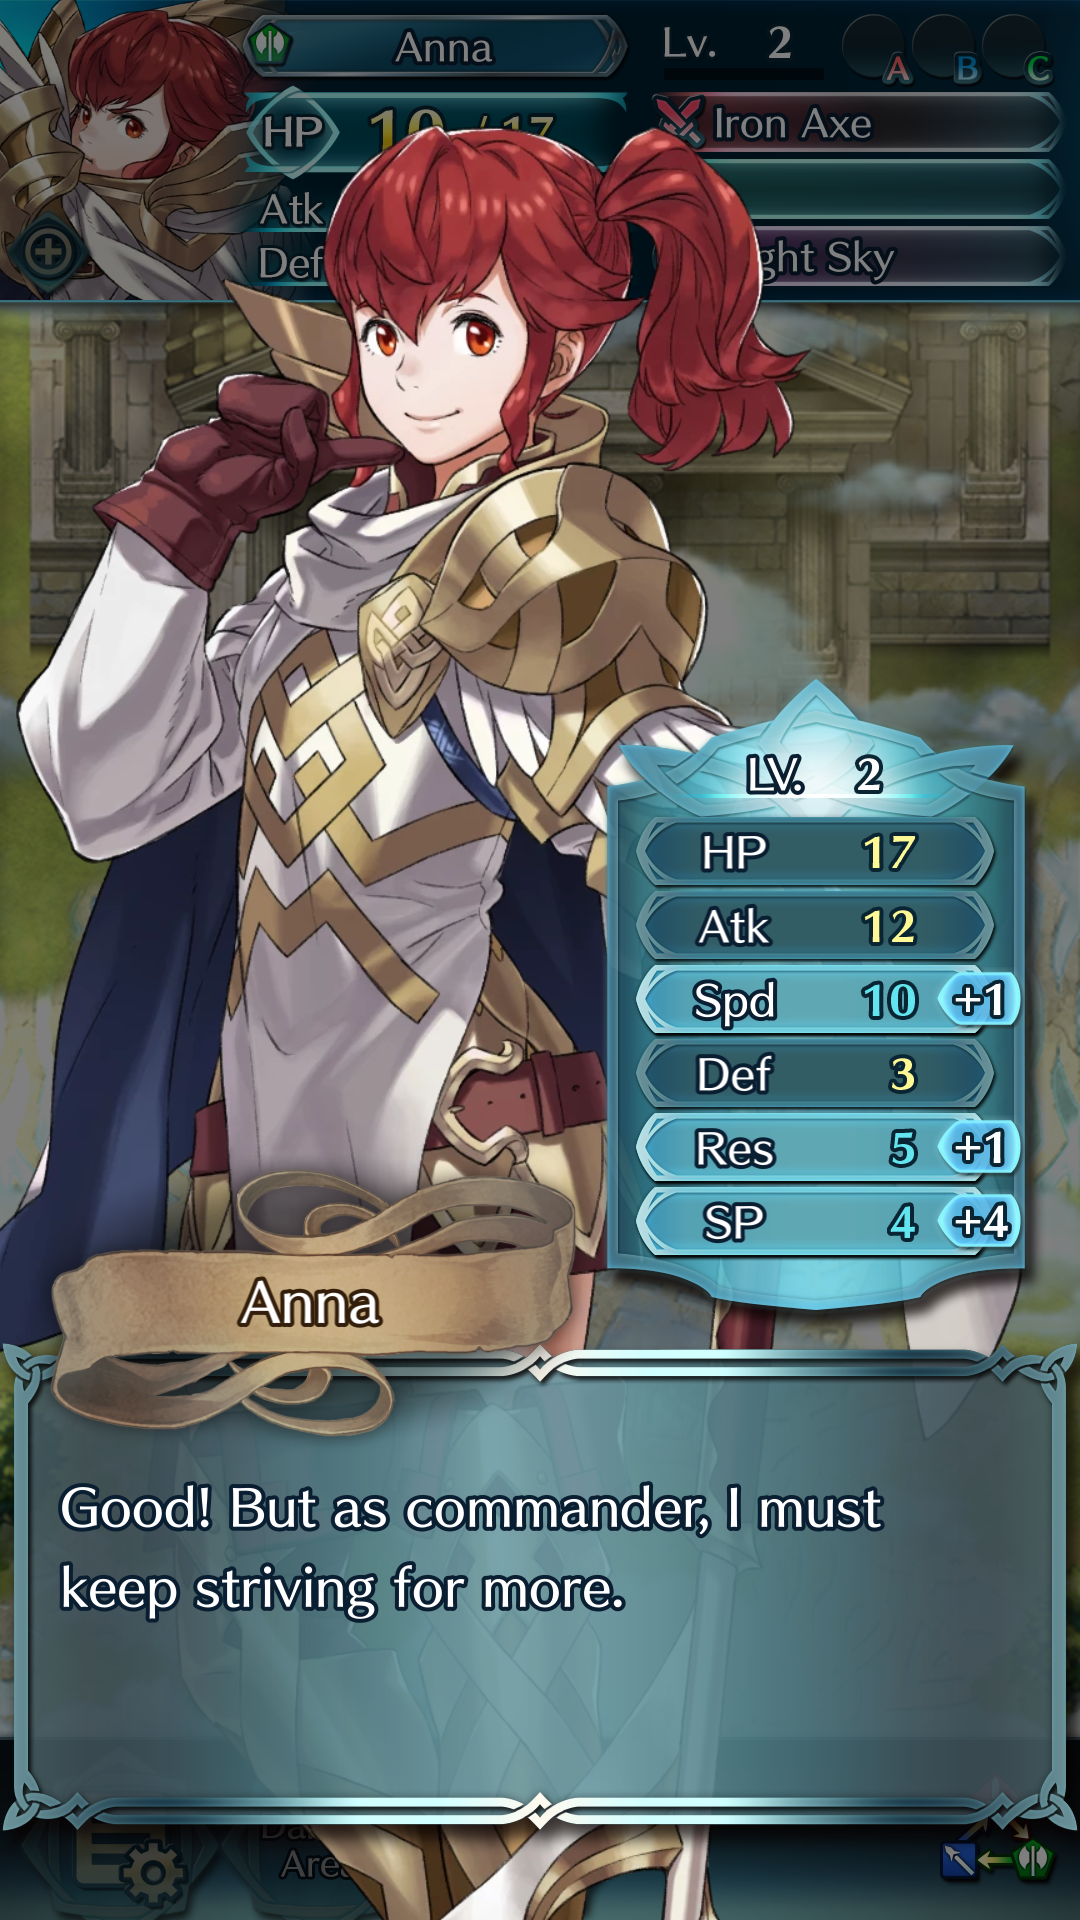 So what you are saying is Fire Emblem fans should strive for more?